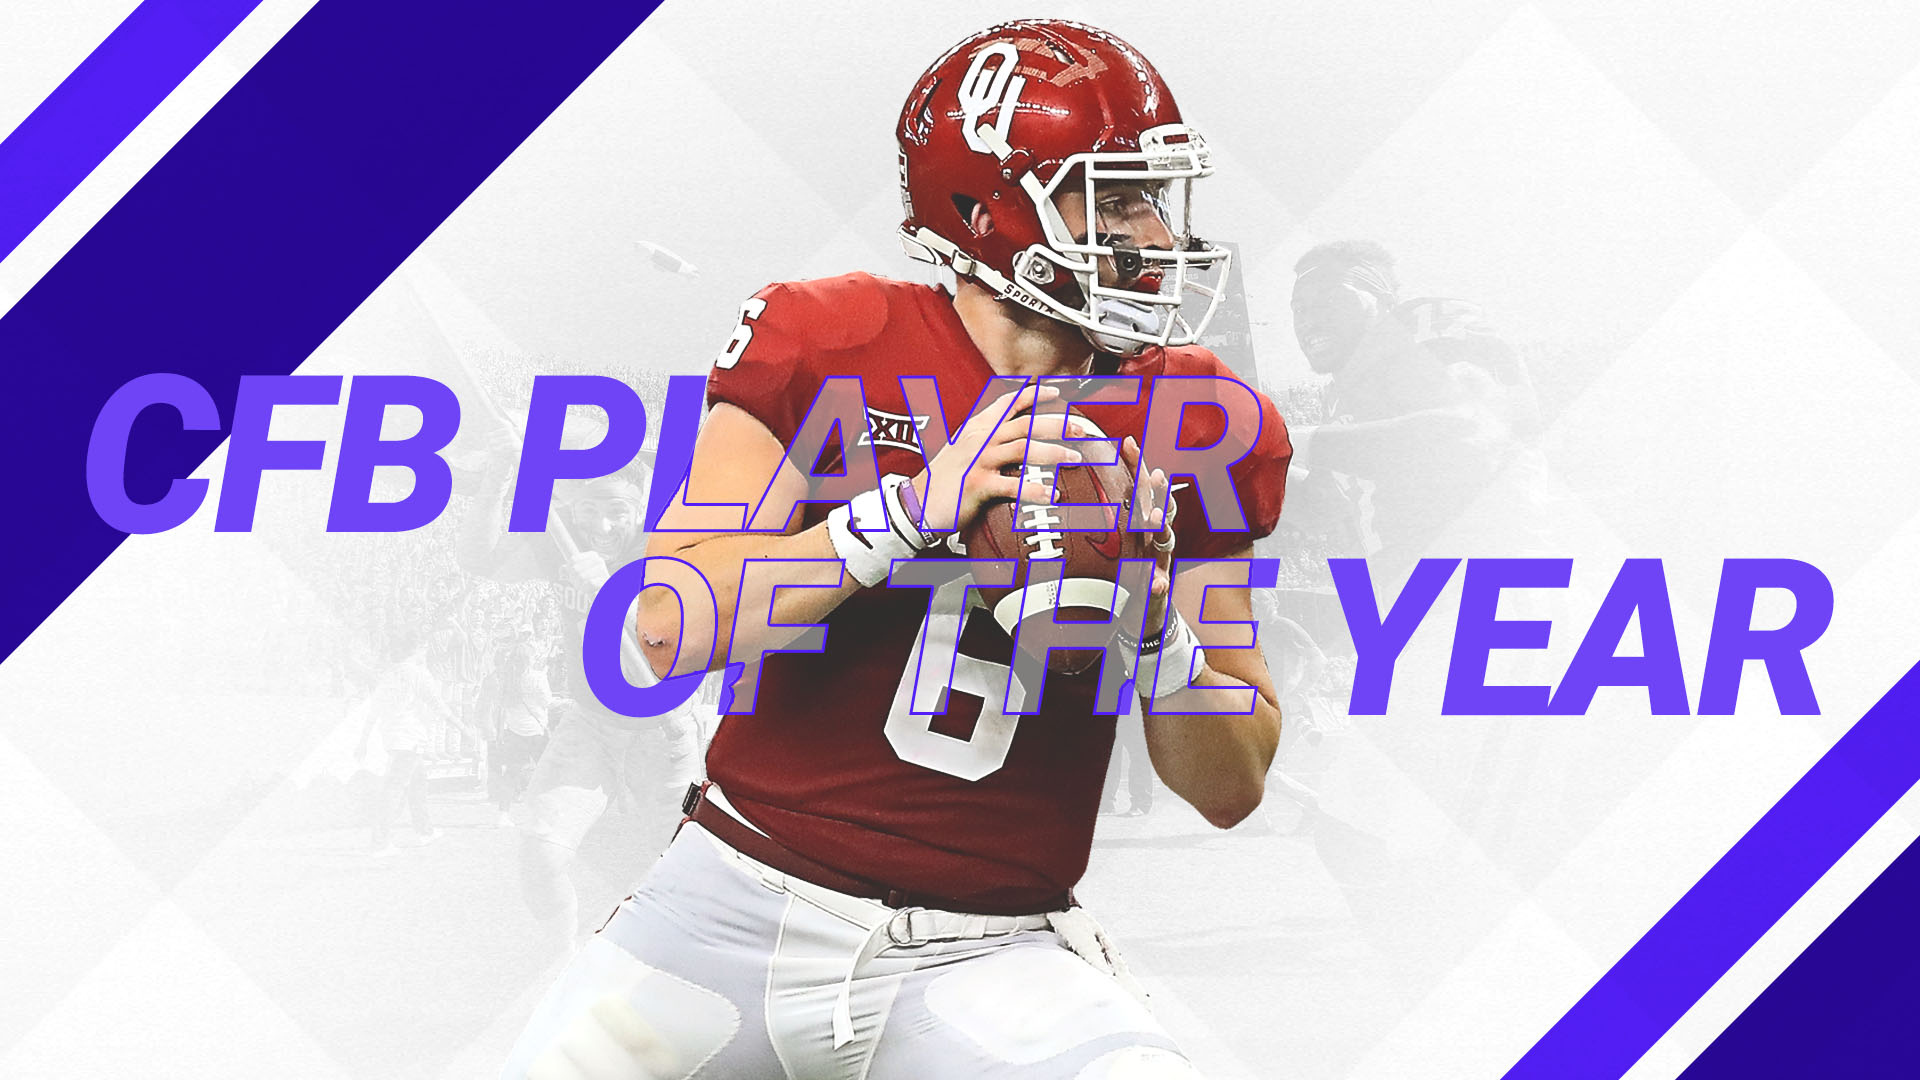 Baker-mayfield-player-of-the-year-121117-sn-ftr_1atwcayto9sk51qidh9k4s0dh0